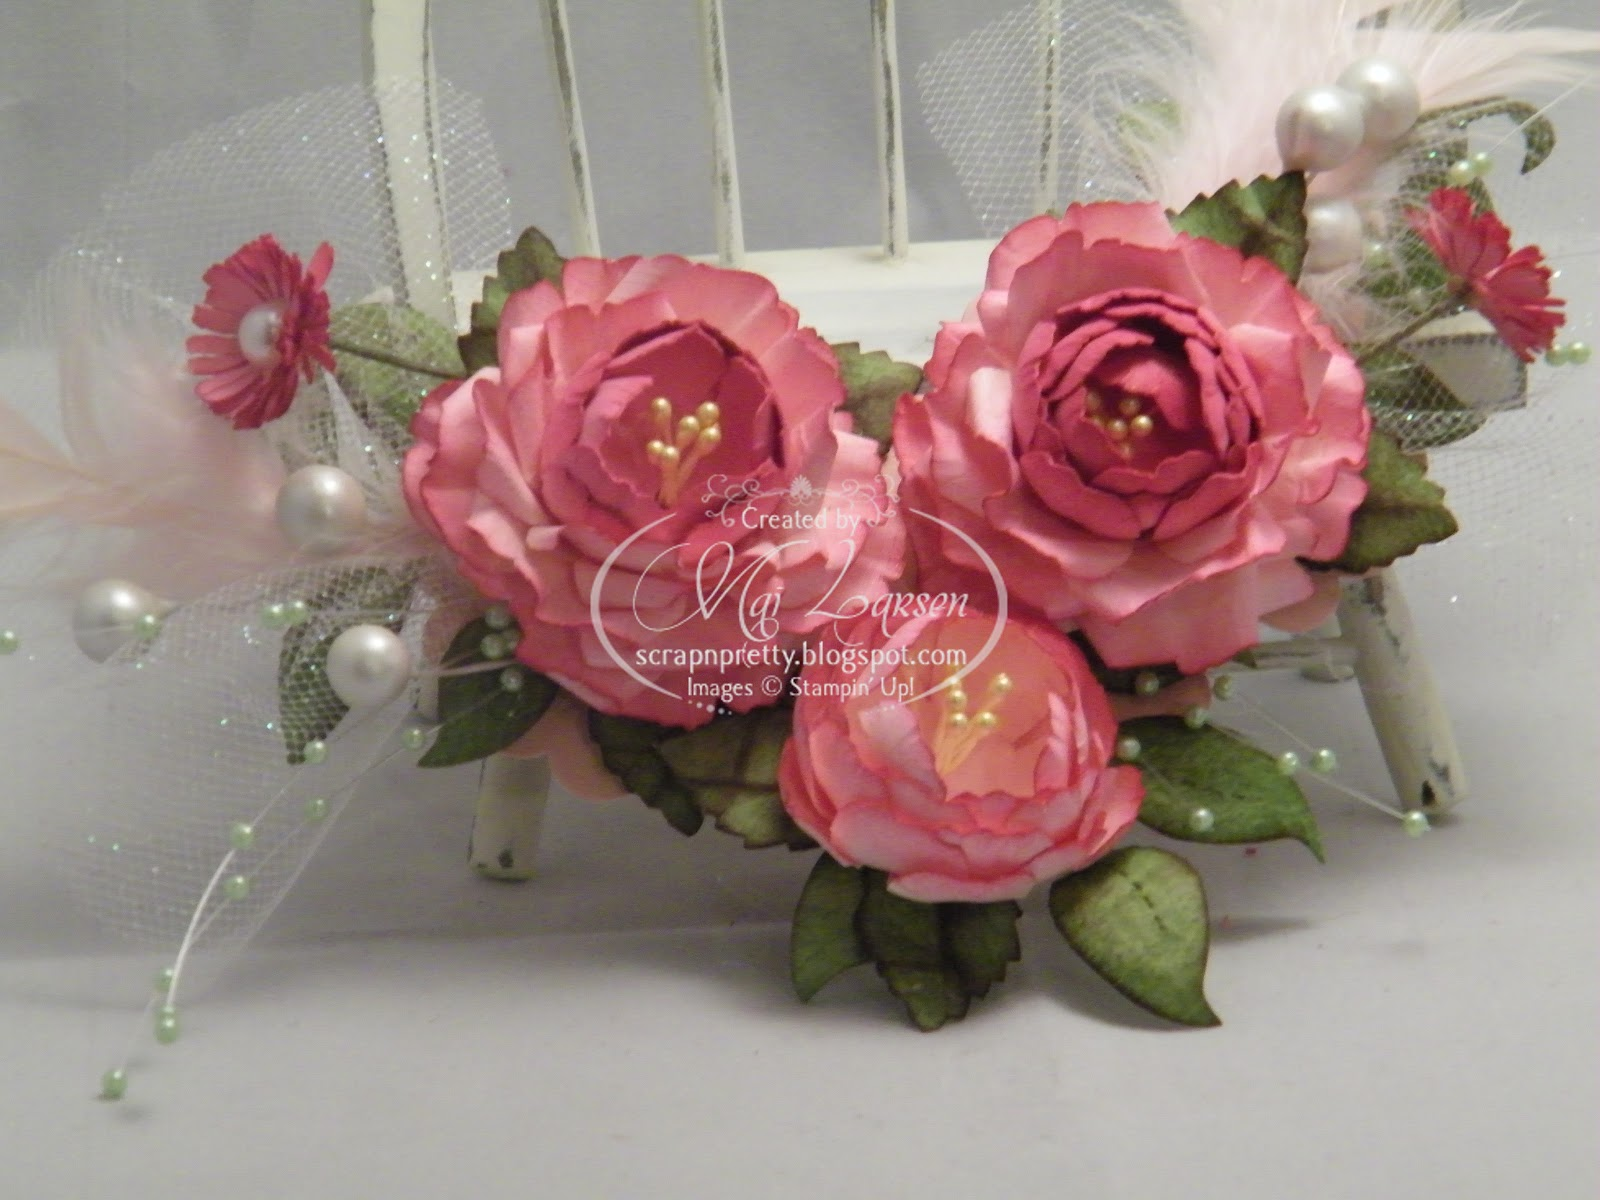 Scrap n pretty papercrafting with mai shabby chic flowers thinking pretty in pink and it just a lovely shabby look im a girly girl and these shabby chic pretty in pink flowers would make a lovely gift for any izmirmasajfo